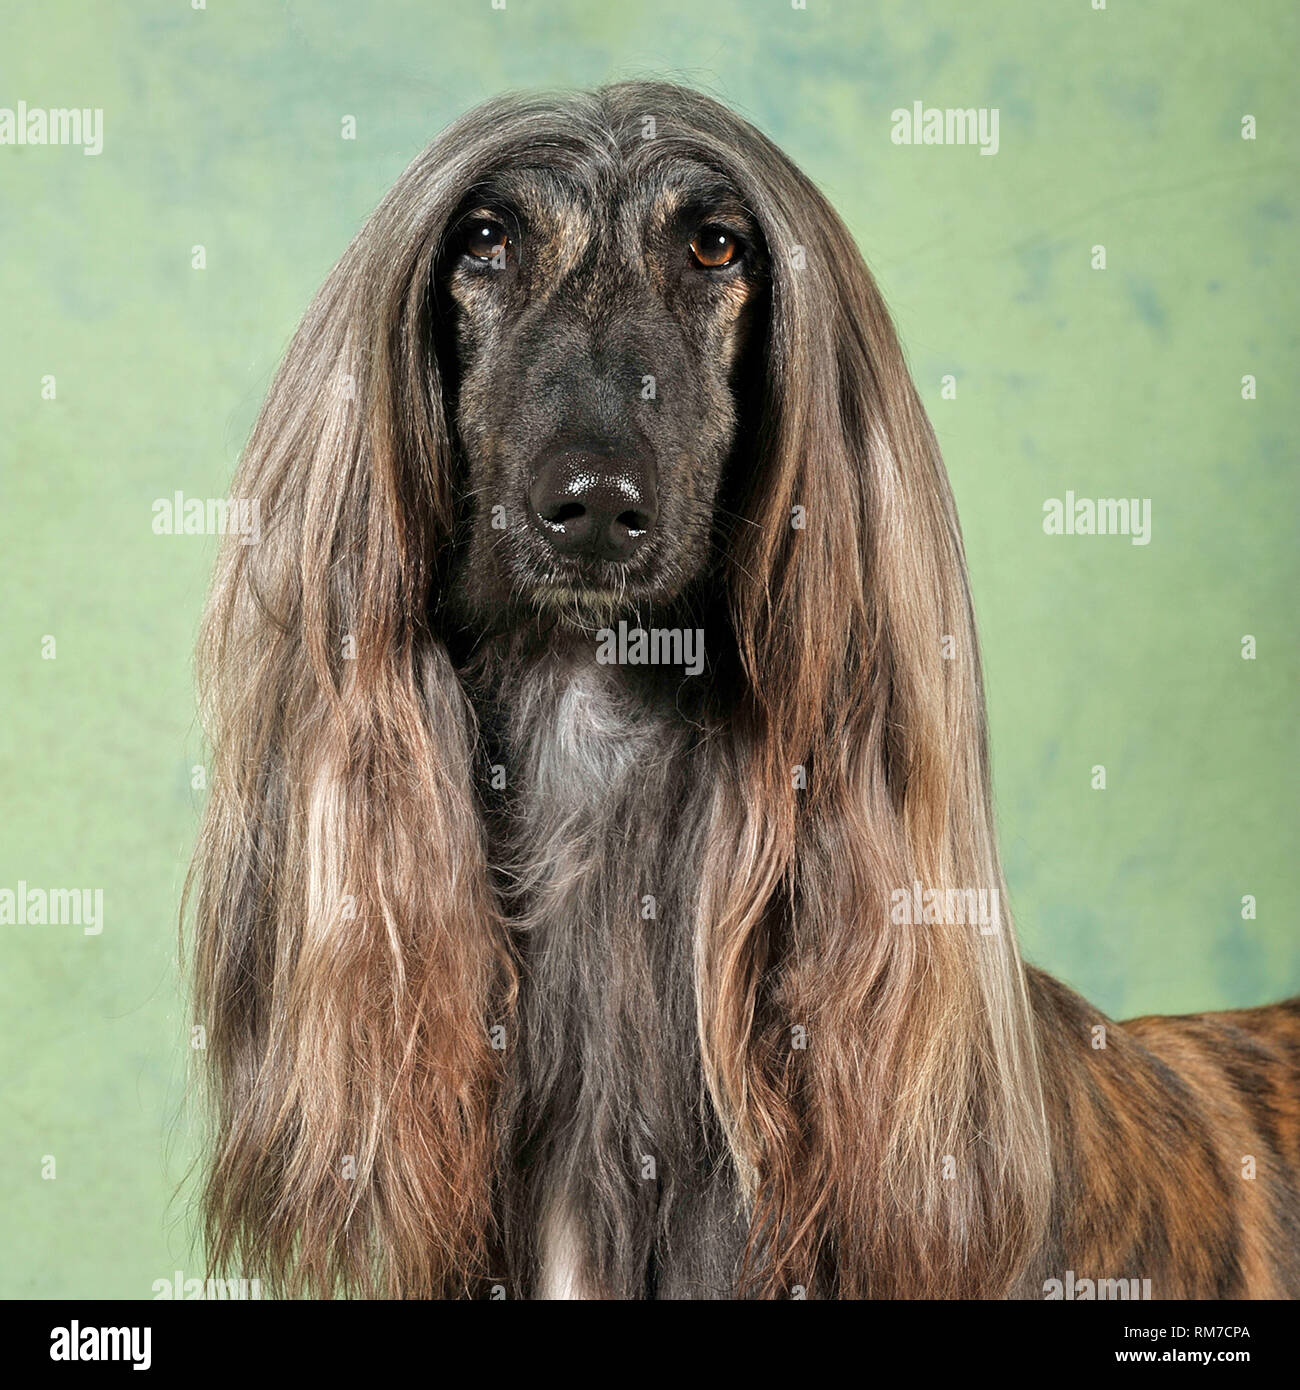 Afghan Hound Dog Stock Photos & Afghan Hound Dog Stock